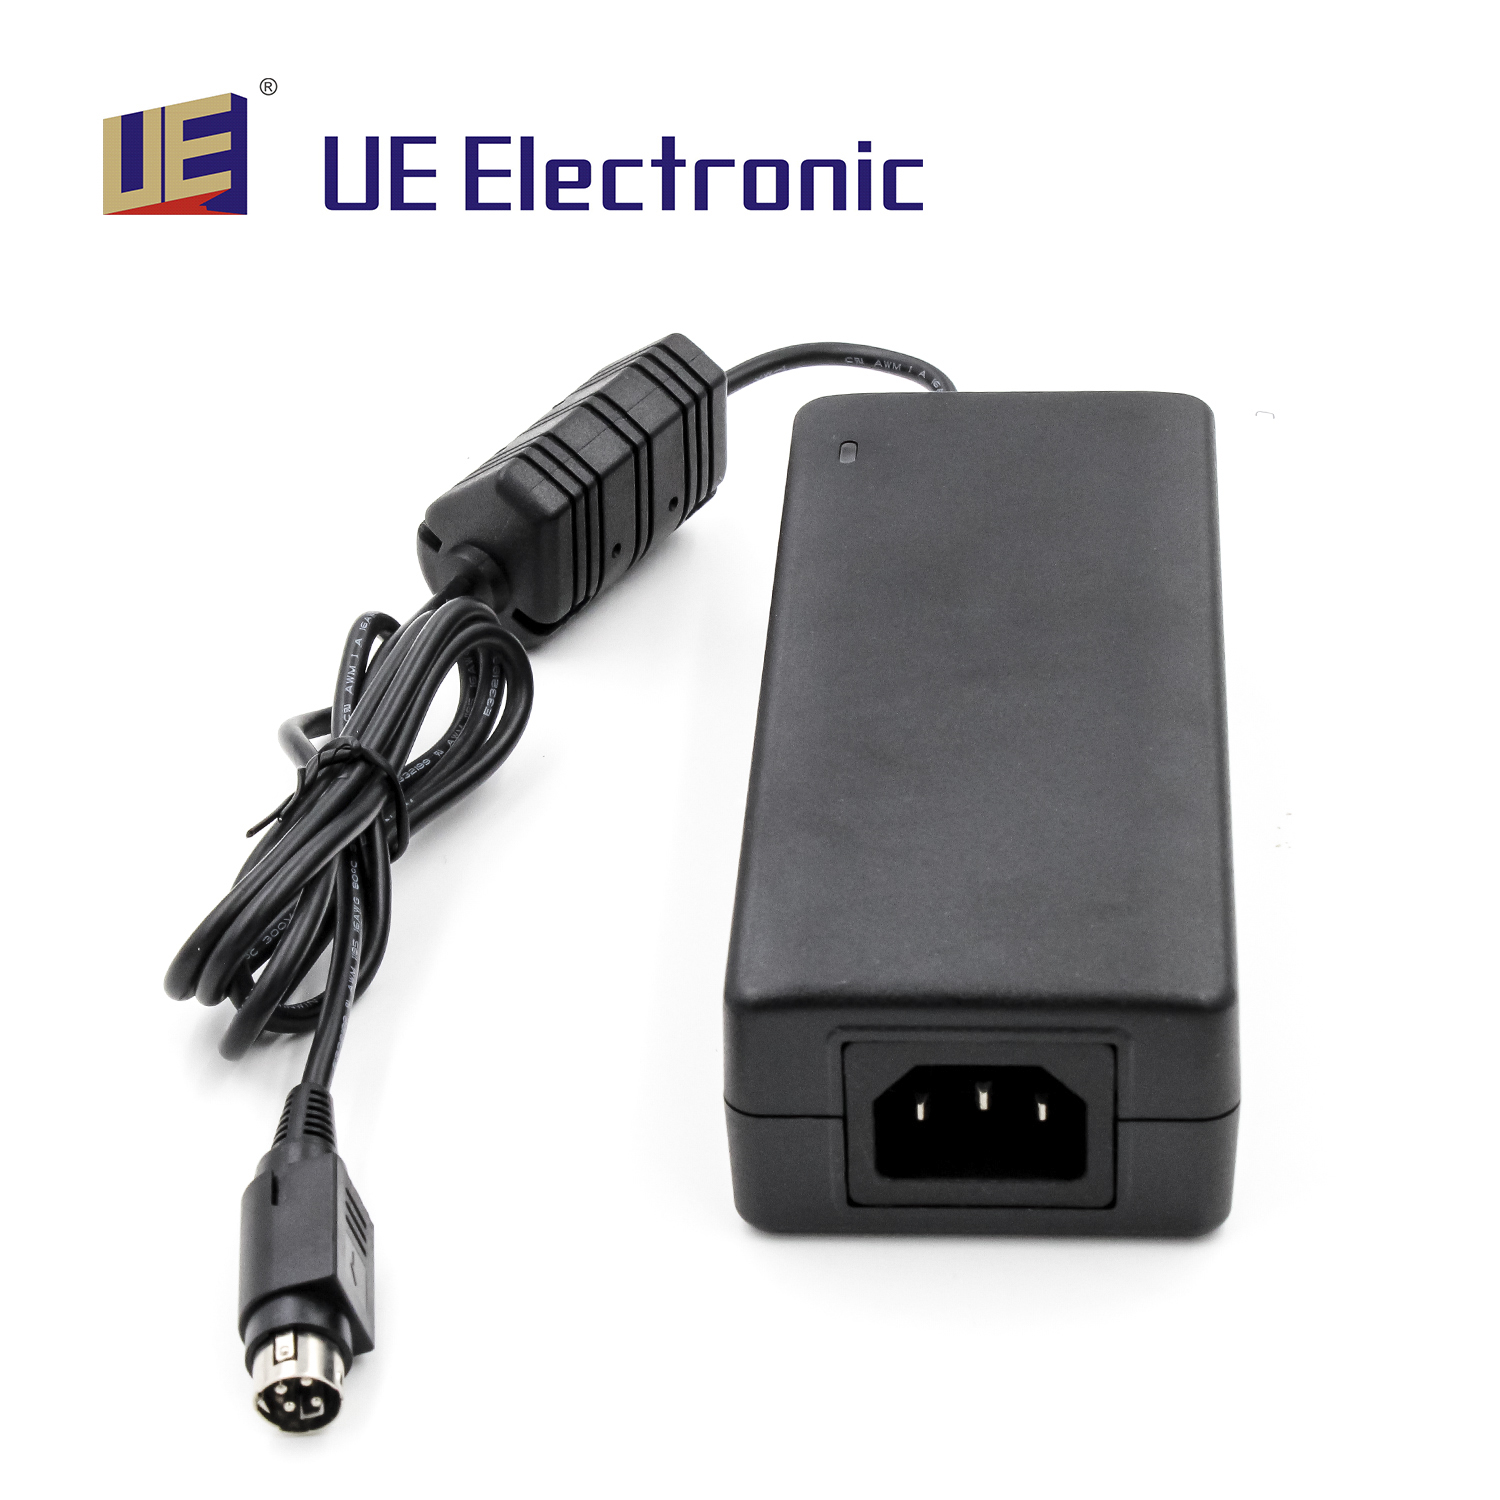 UE Electronic 90W desktop type medical device power adapter with energy star level VI